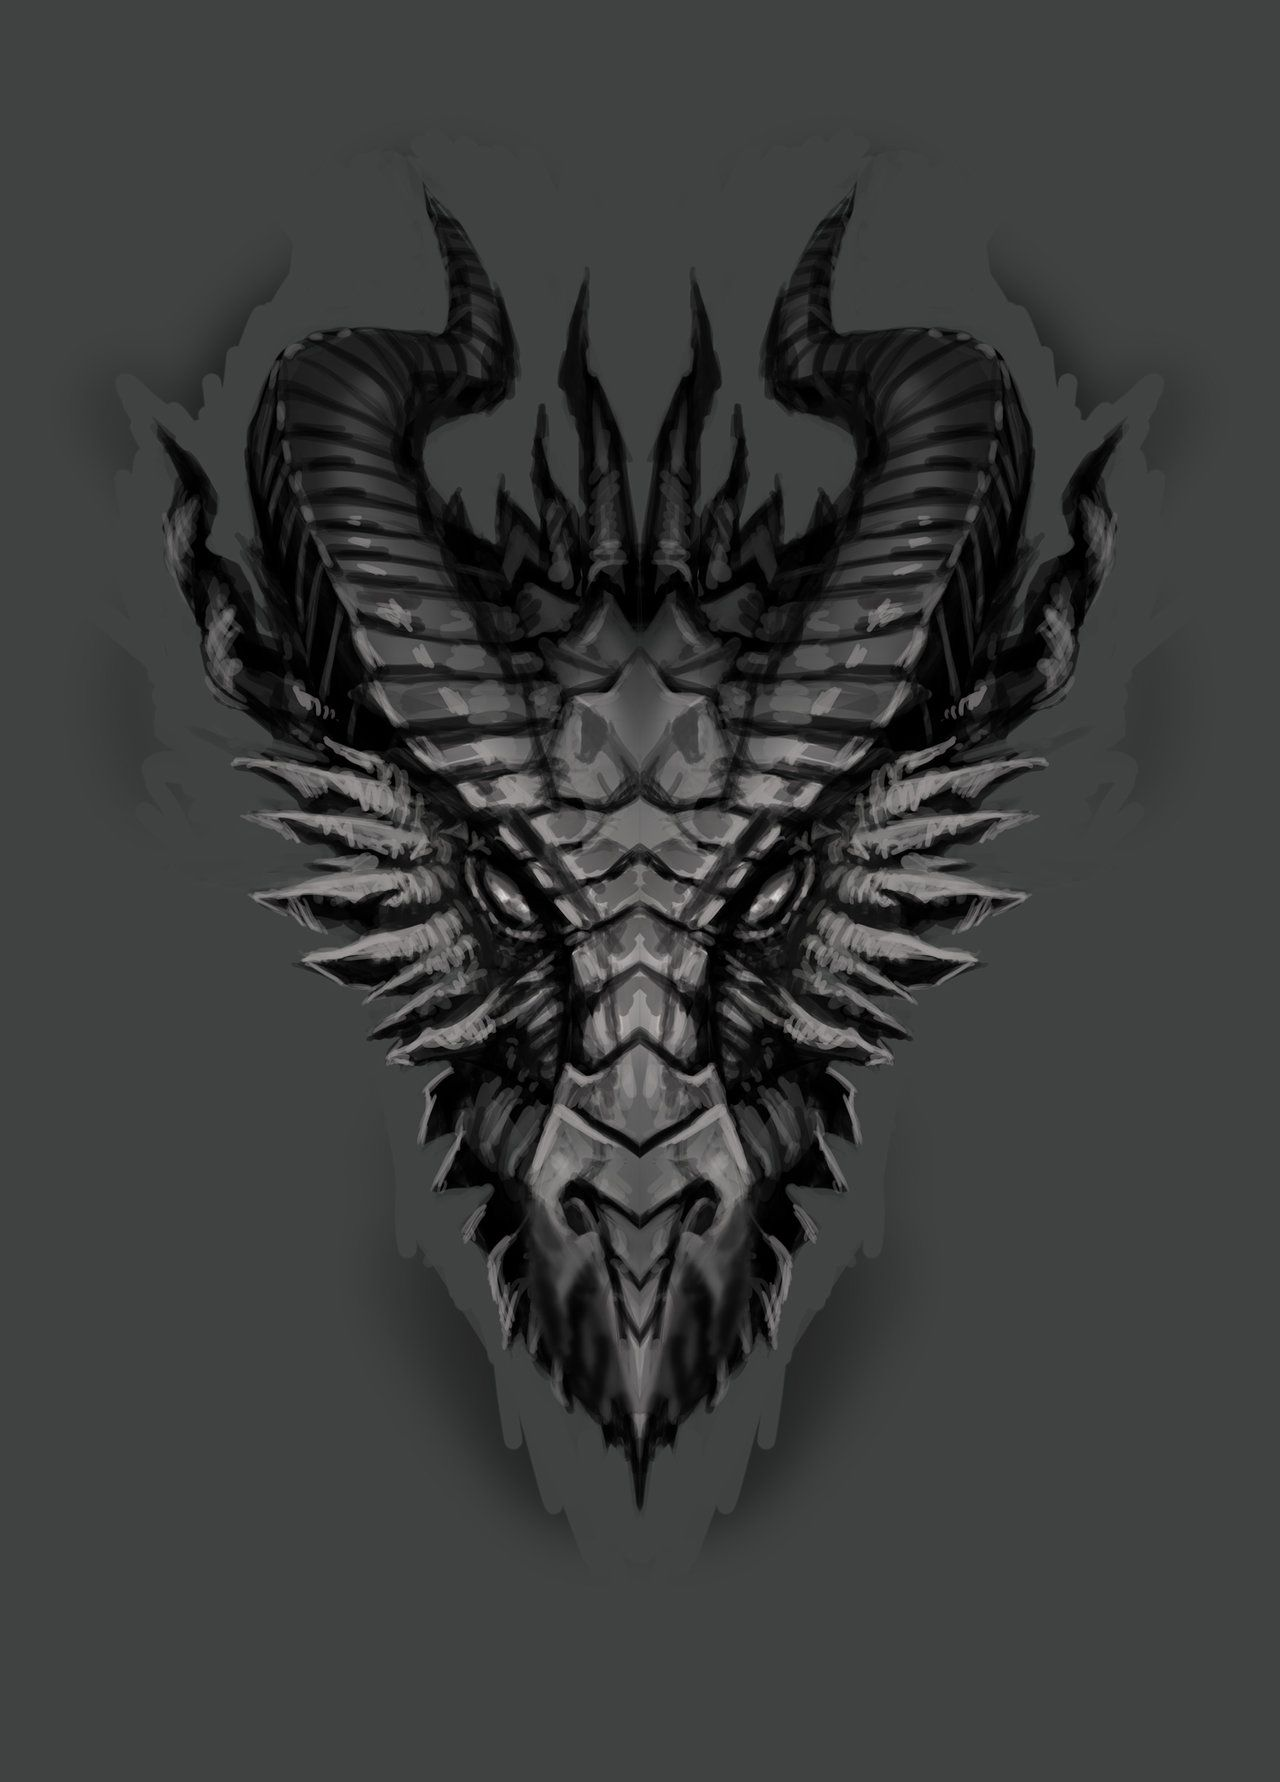 dragon face - Google Search | Characters | Dragon head ...